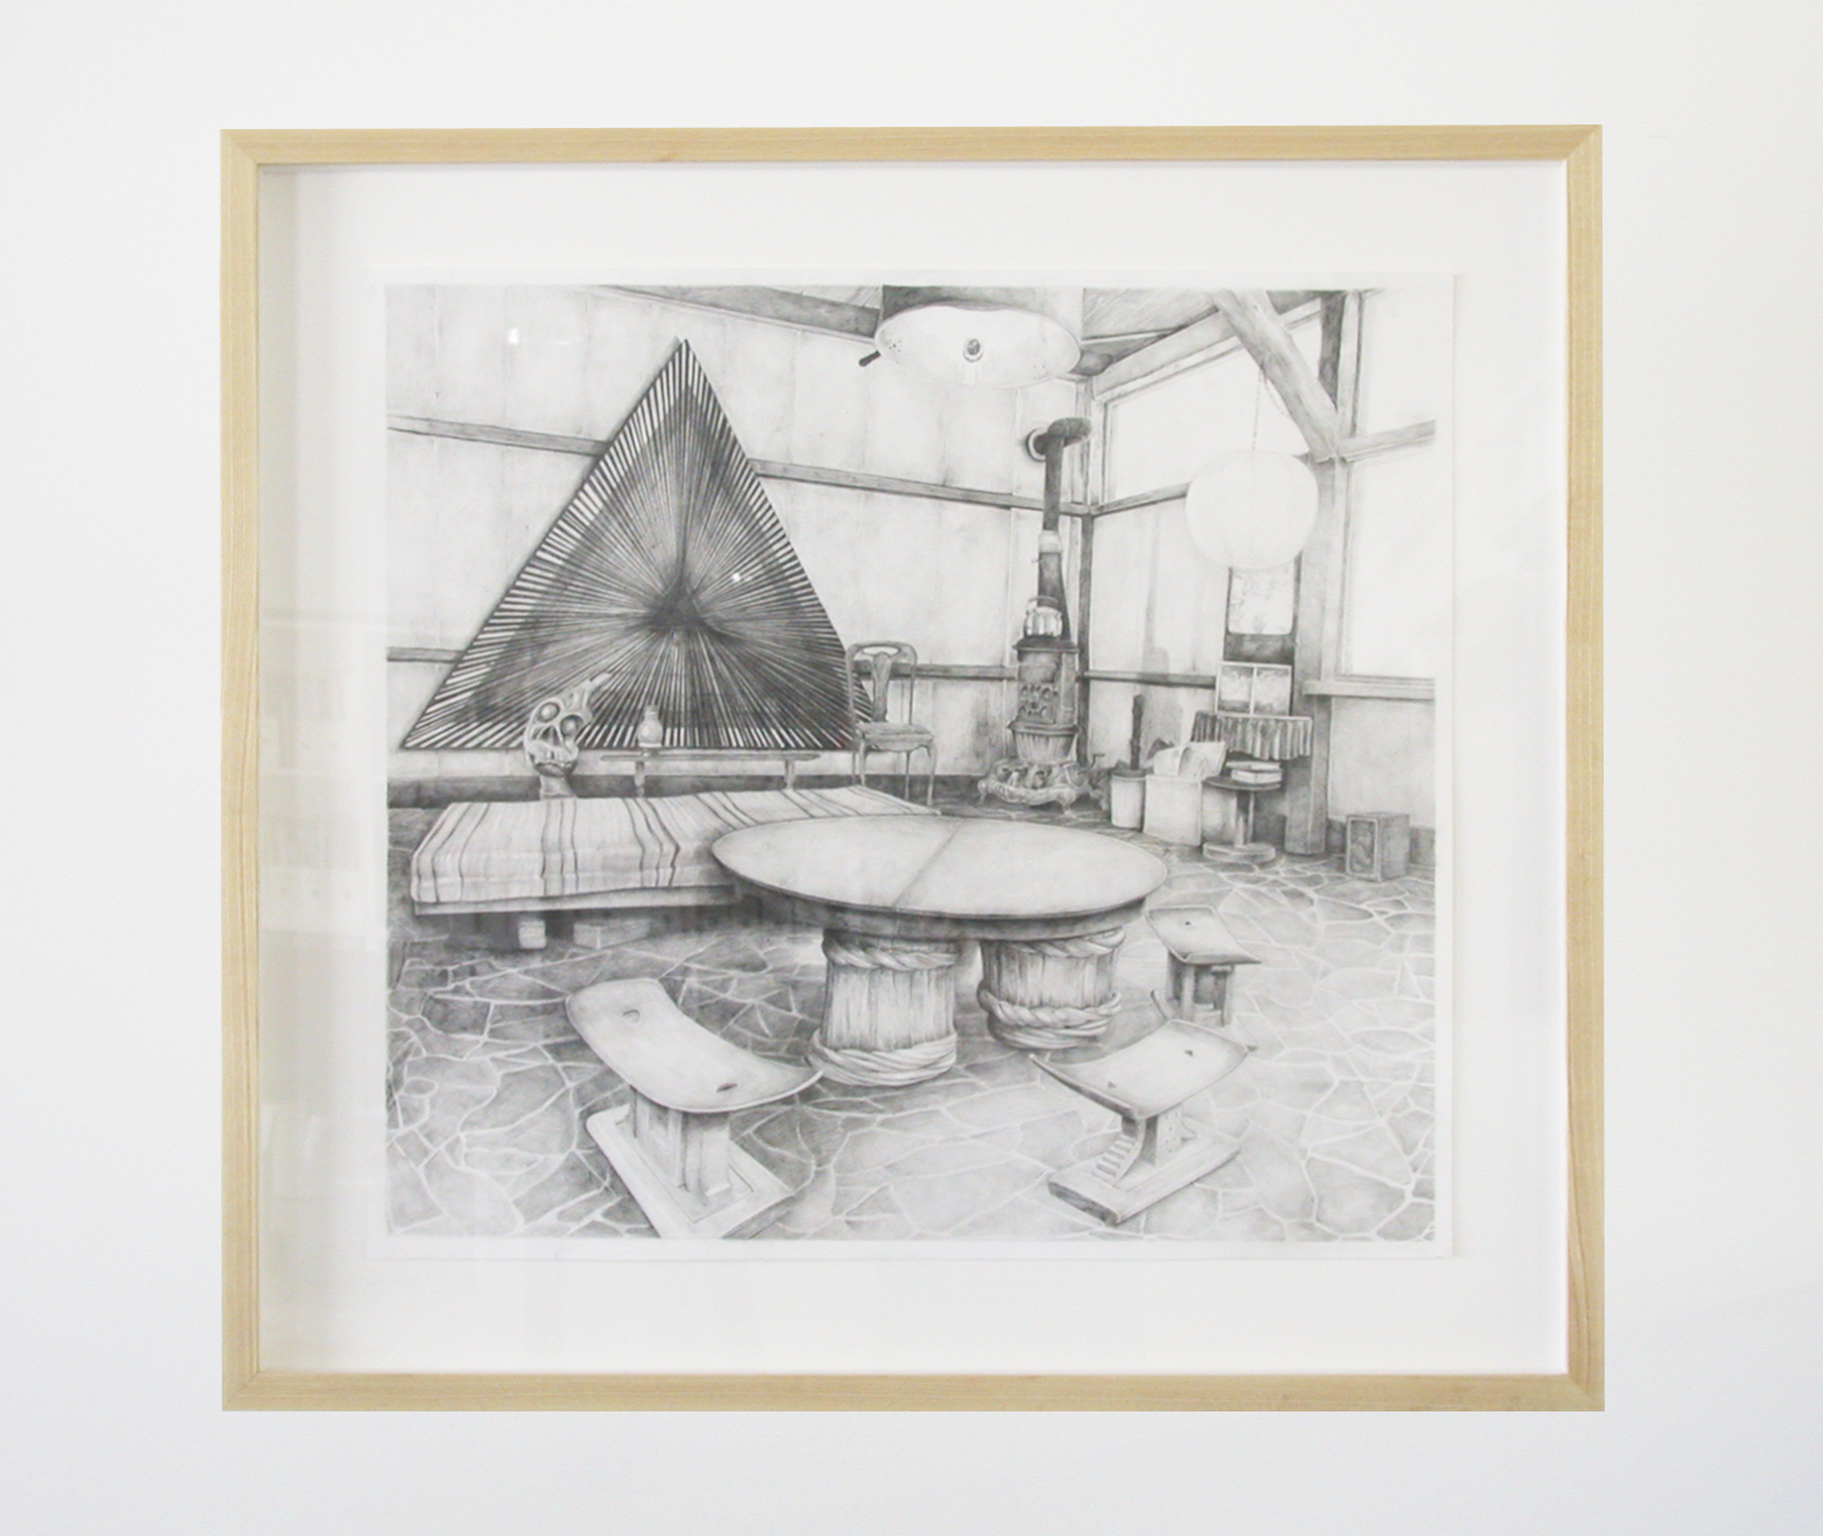 ​Alex Morrison, That dark age is thankfully over...​, 2007, graphite on paper, ​28 x 30 in. (71 x 76 cm) by